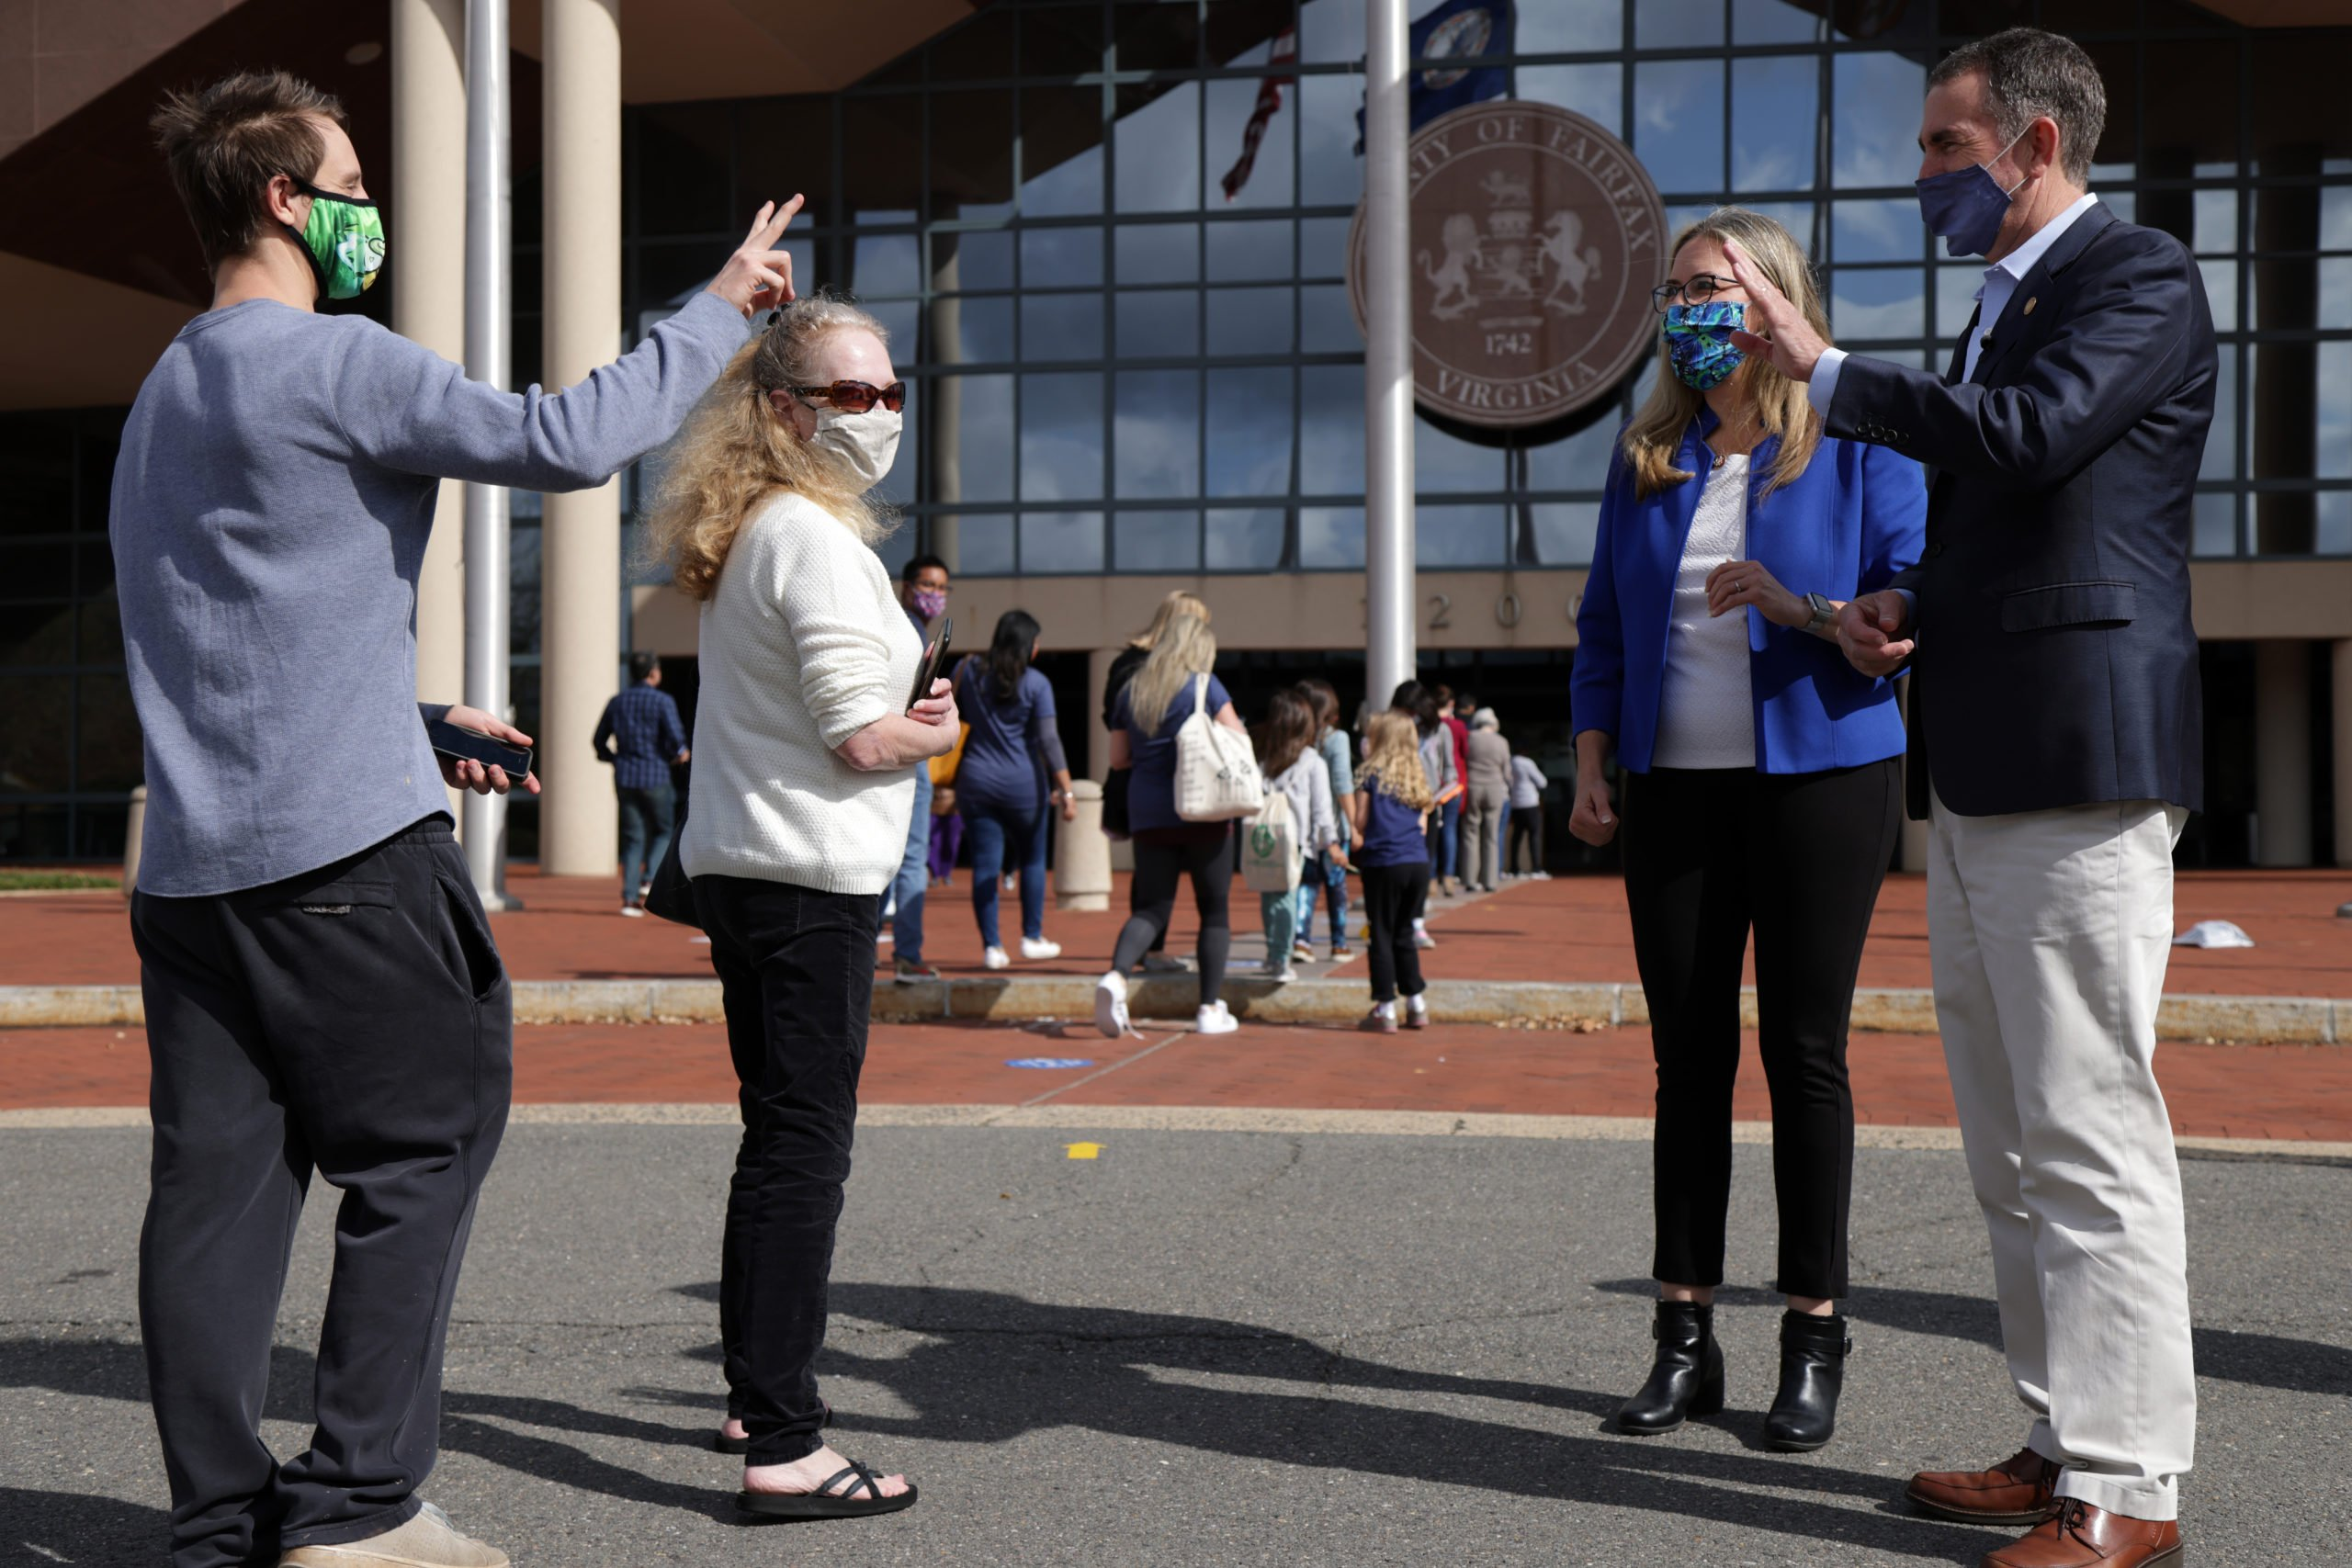 Virginia Gov. Ralph Northam and Rep. Jennifer Wexton greet voters outside an early voting location at Fairfax County Government Center on Oct. 19 in Fairfax, Virginia. (Alex Wong/Getty Images)